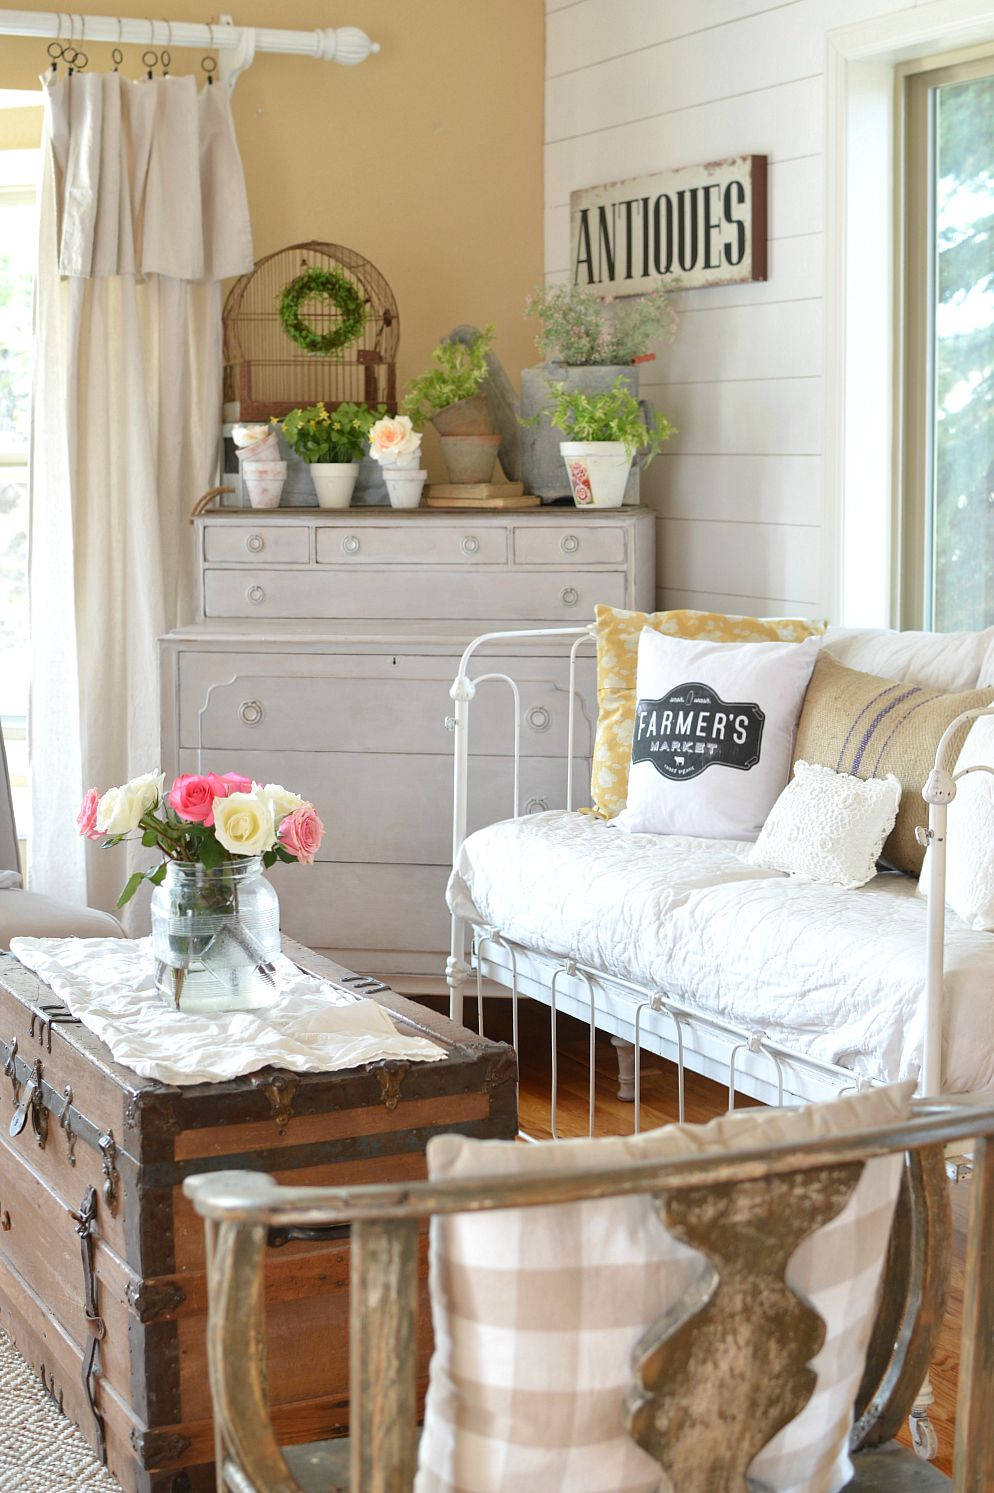 Simple Ways Decorate For Spring on a Budget Shabby chic